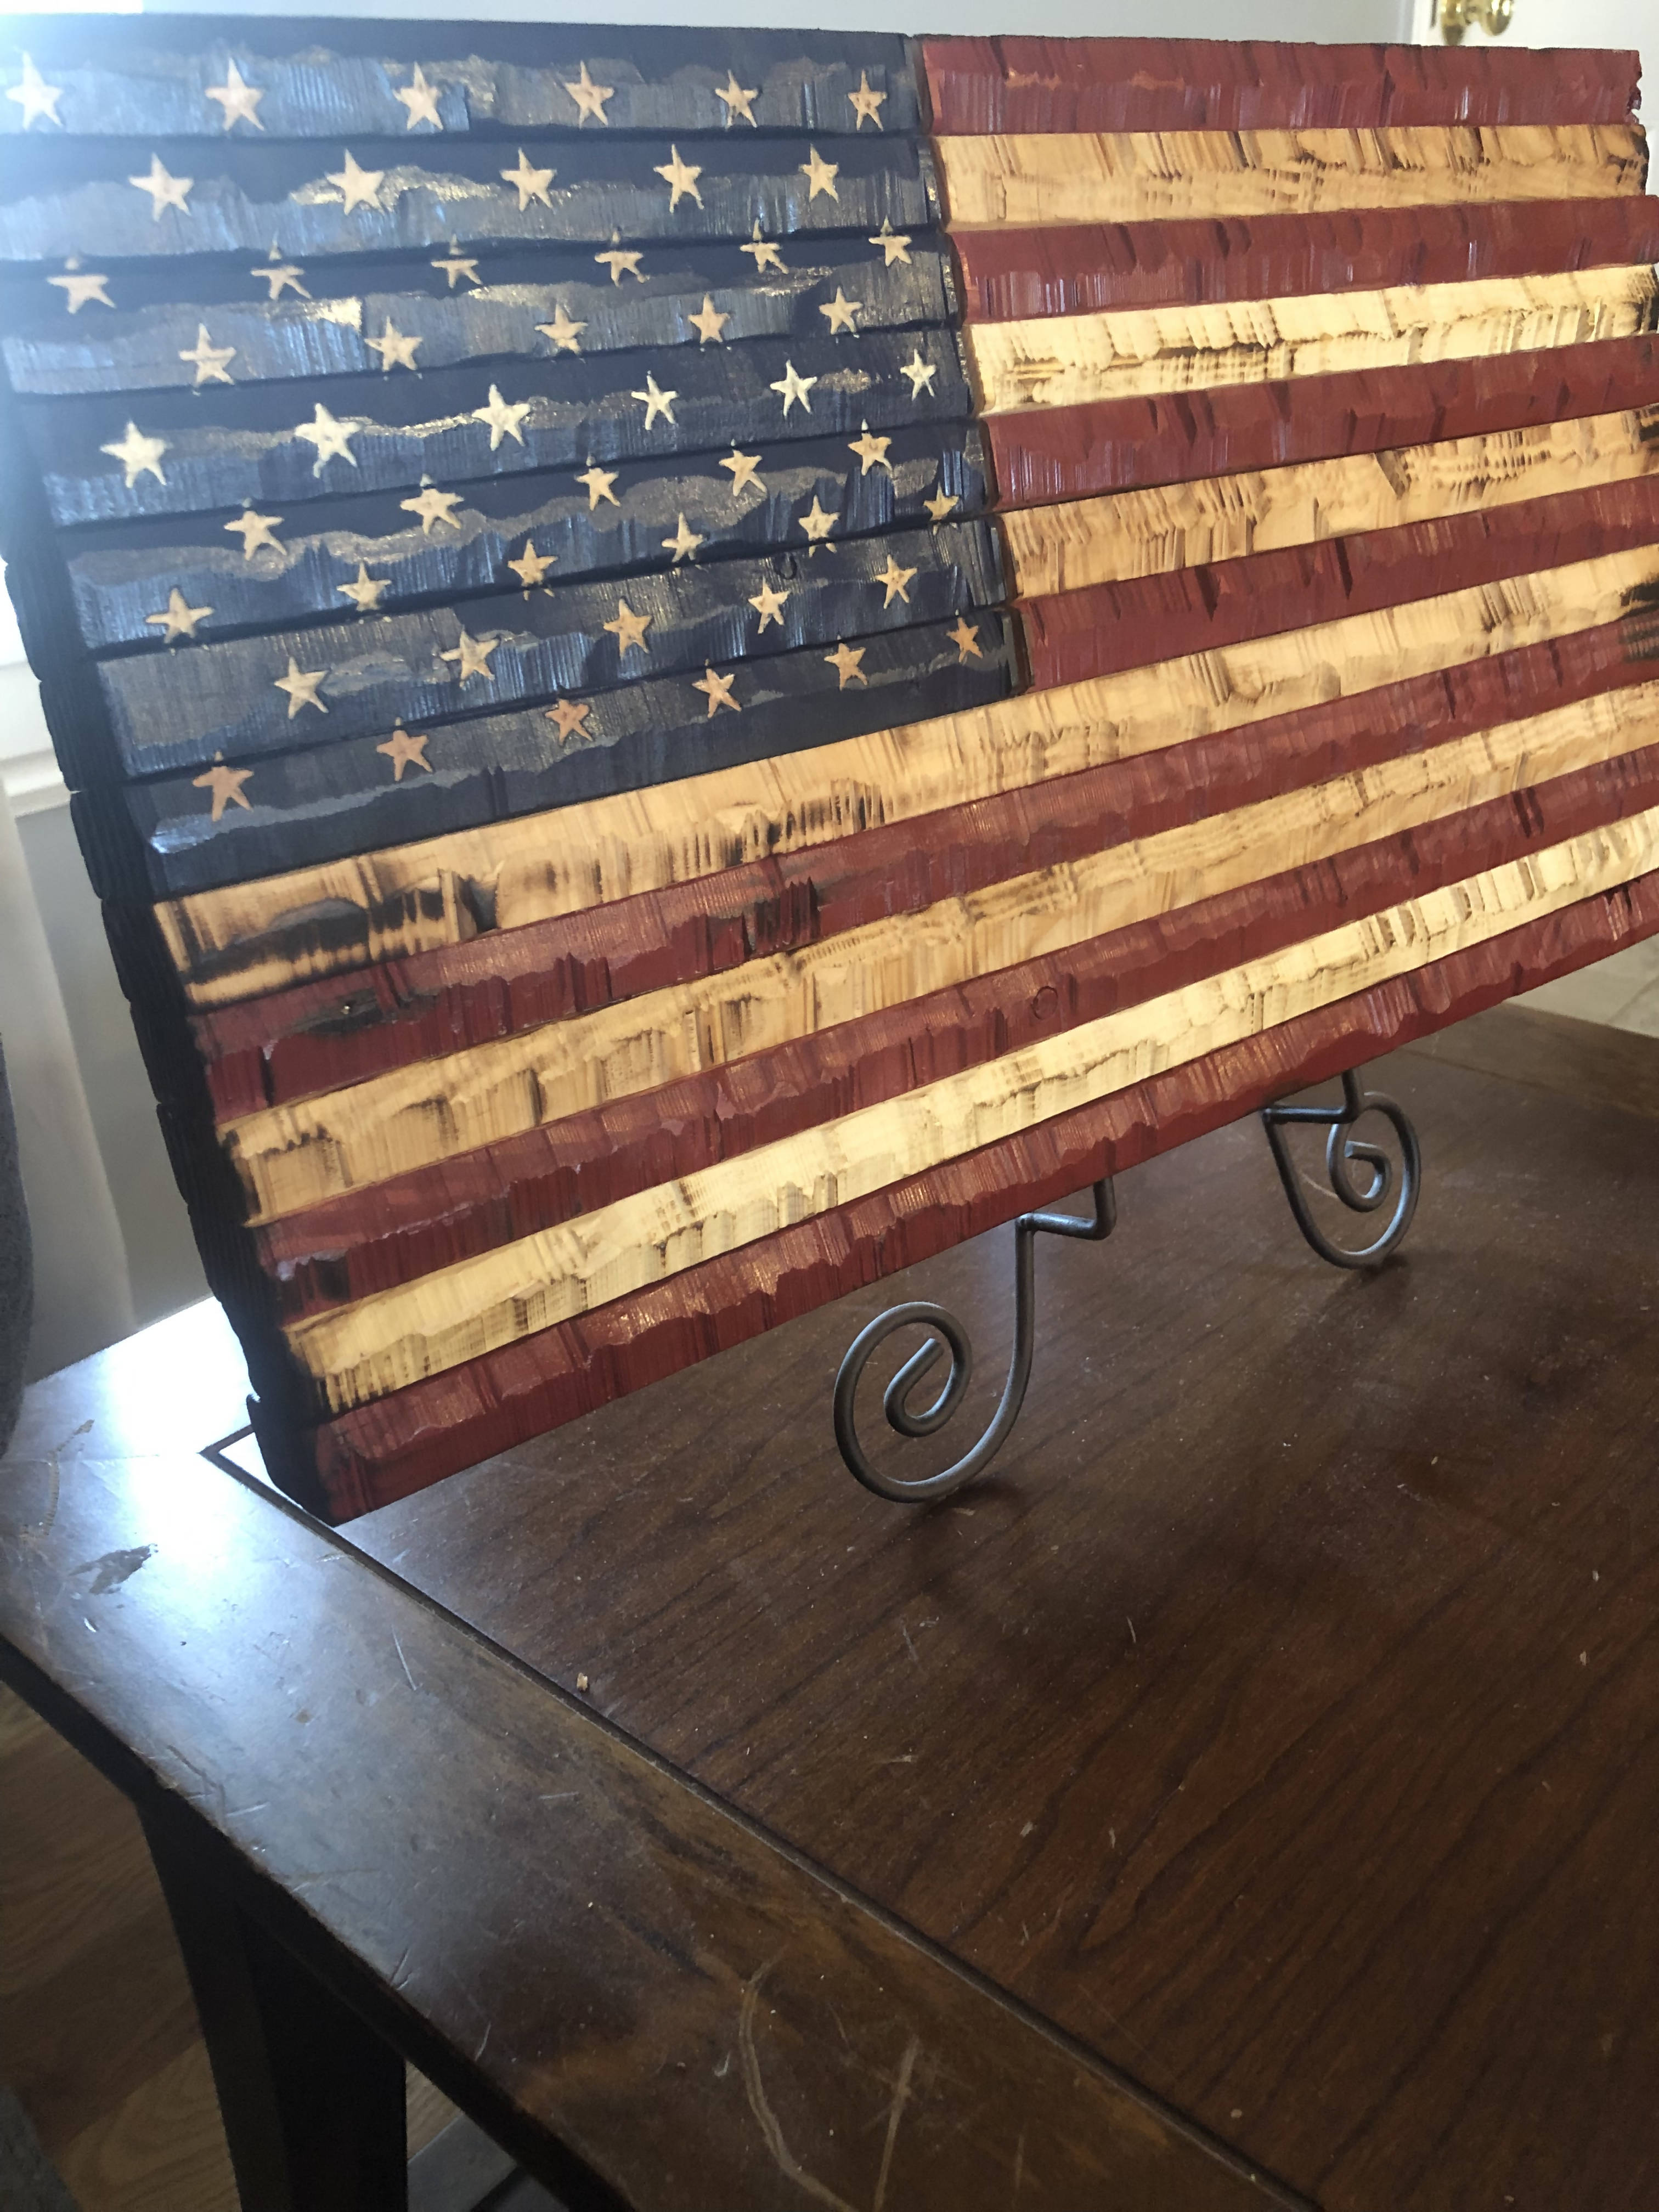 18x9.75 USA flag - Cave Market Artisan Home Goods and Furniture